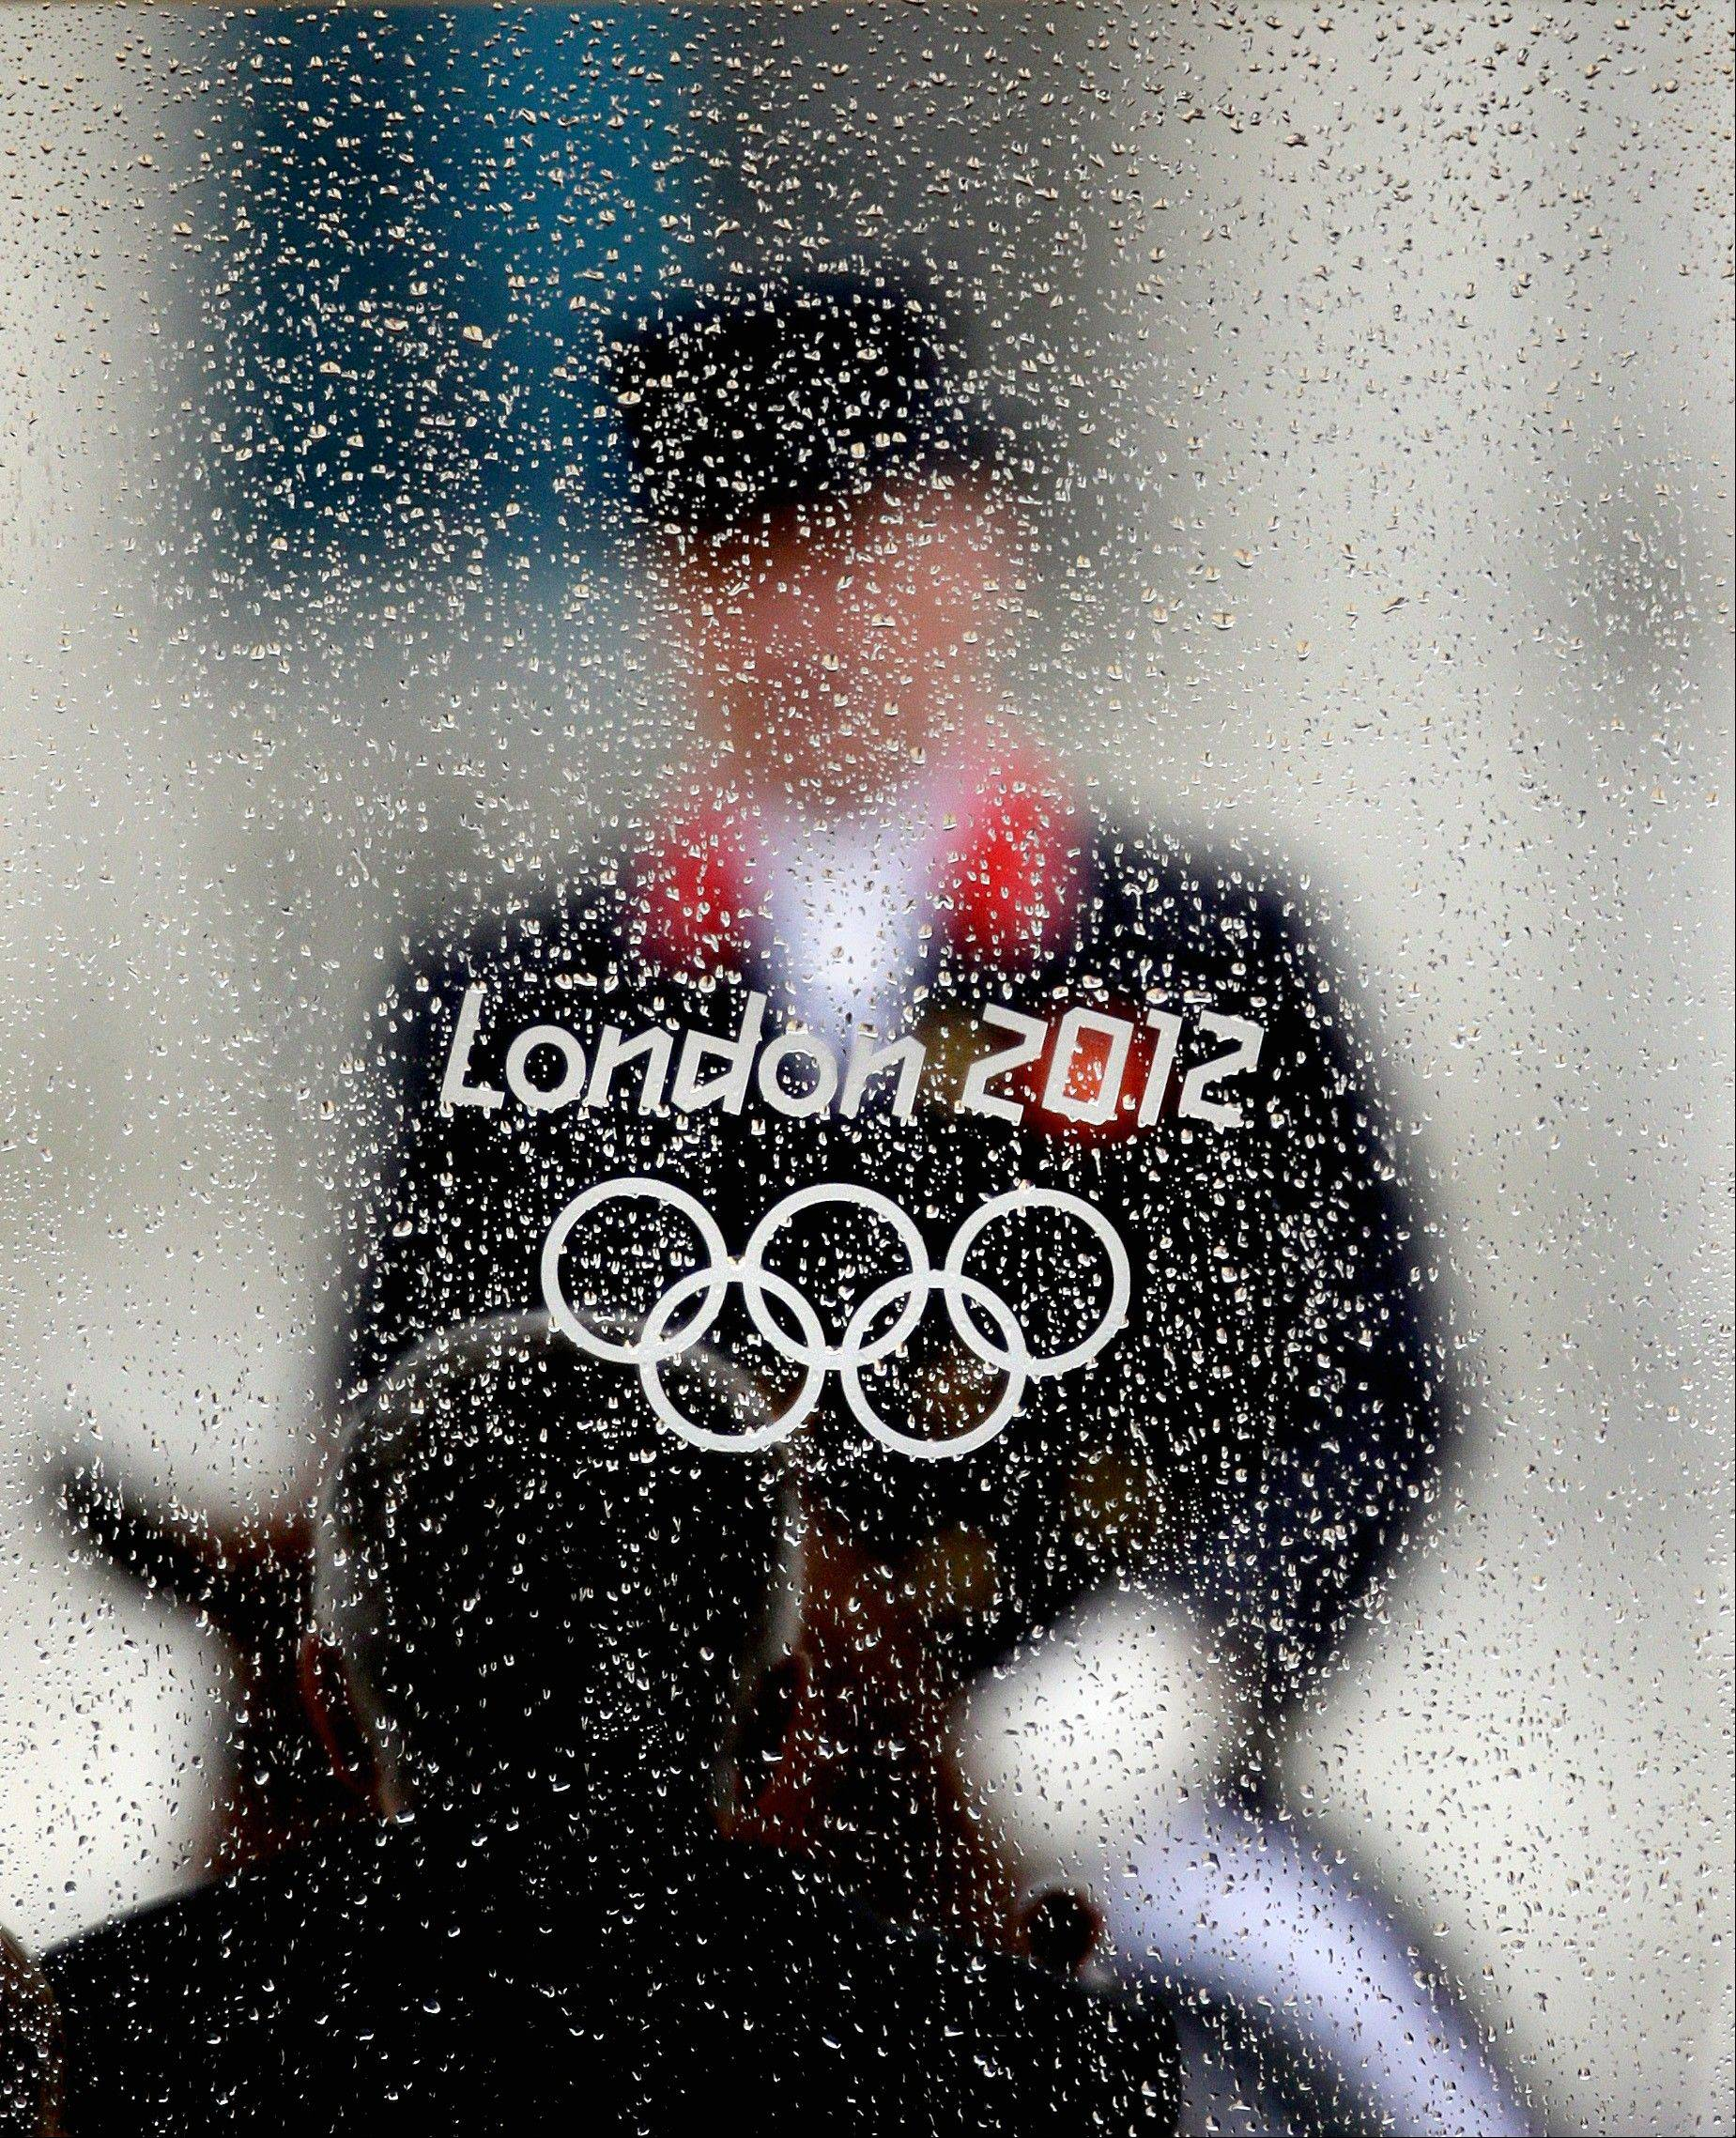 Rain drops collect on the window of a judge's booth as Richard Davison, of Great Britain, rides his horse Artemis, in the equestrian dressage competition at the 2012 Summer Olympics, Friday, Aug. 3, 2012, in London.